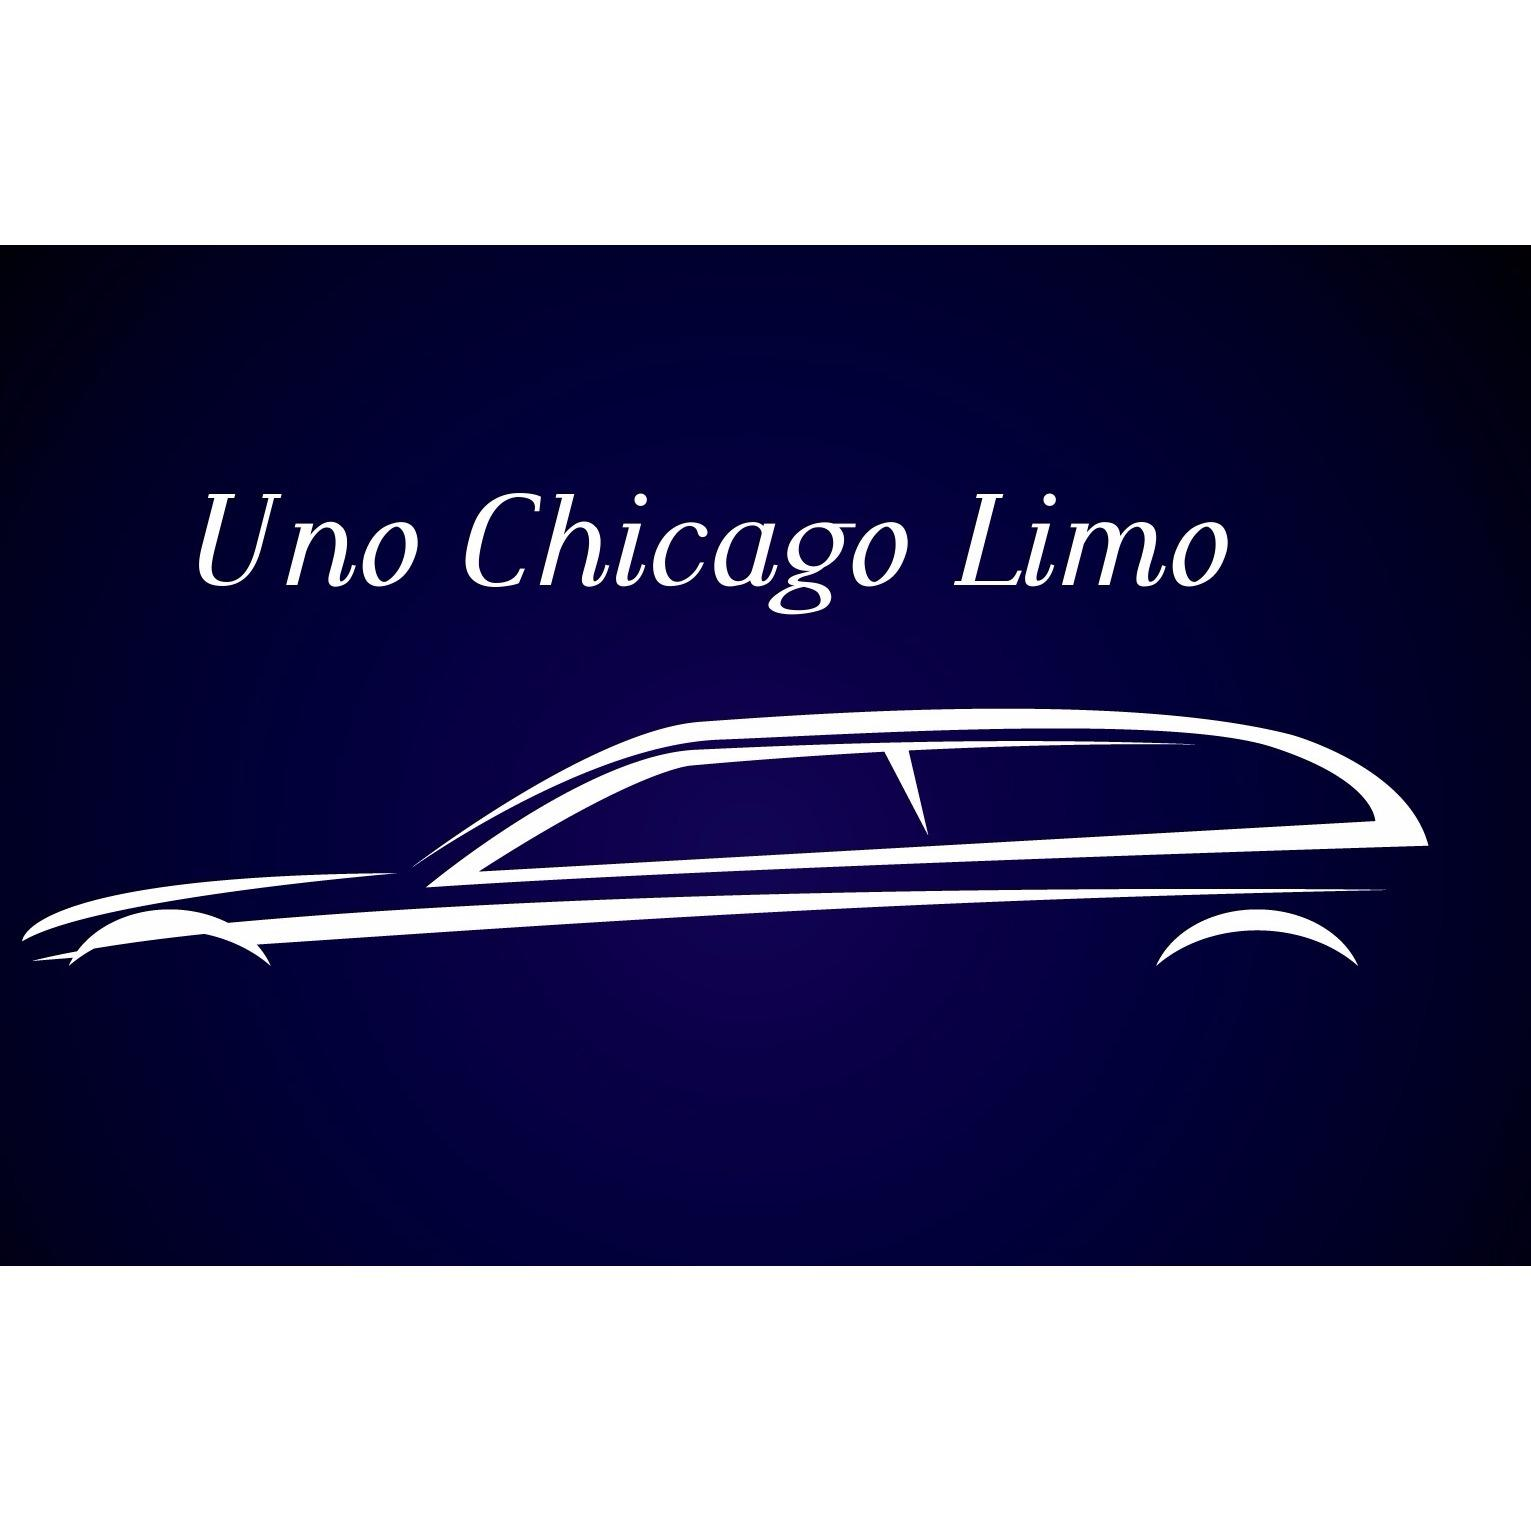 Uno Chicago limo